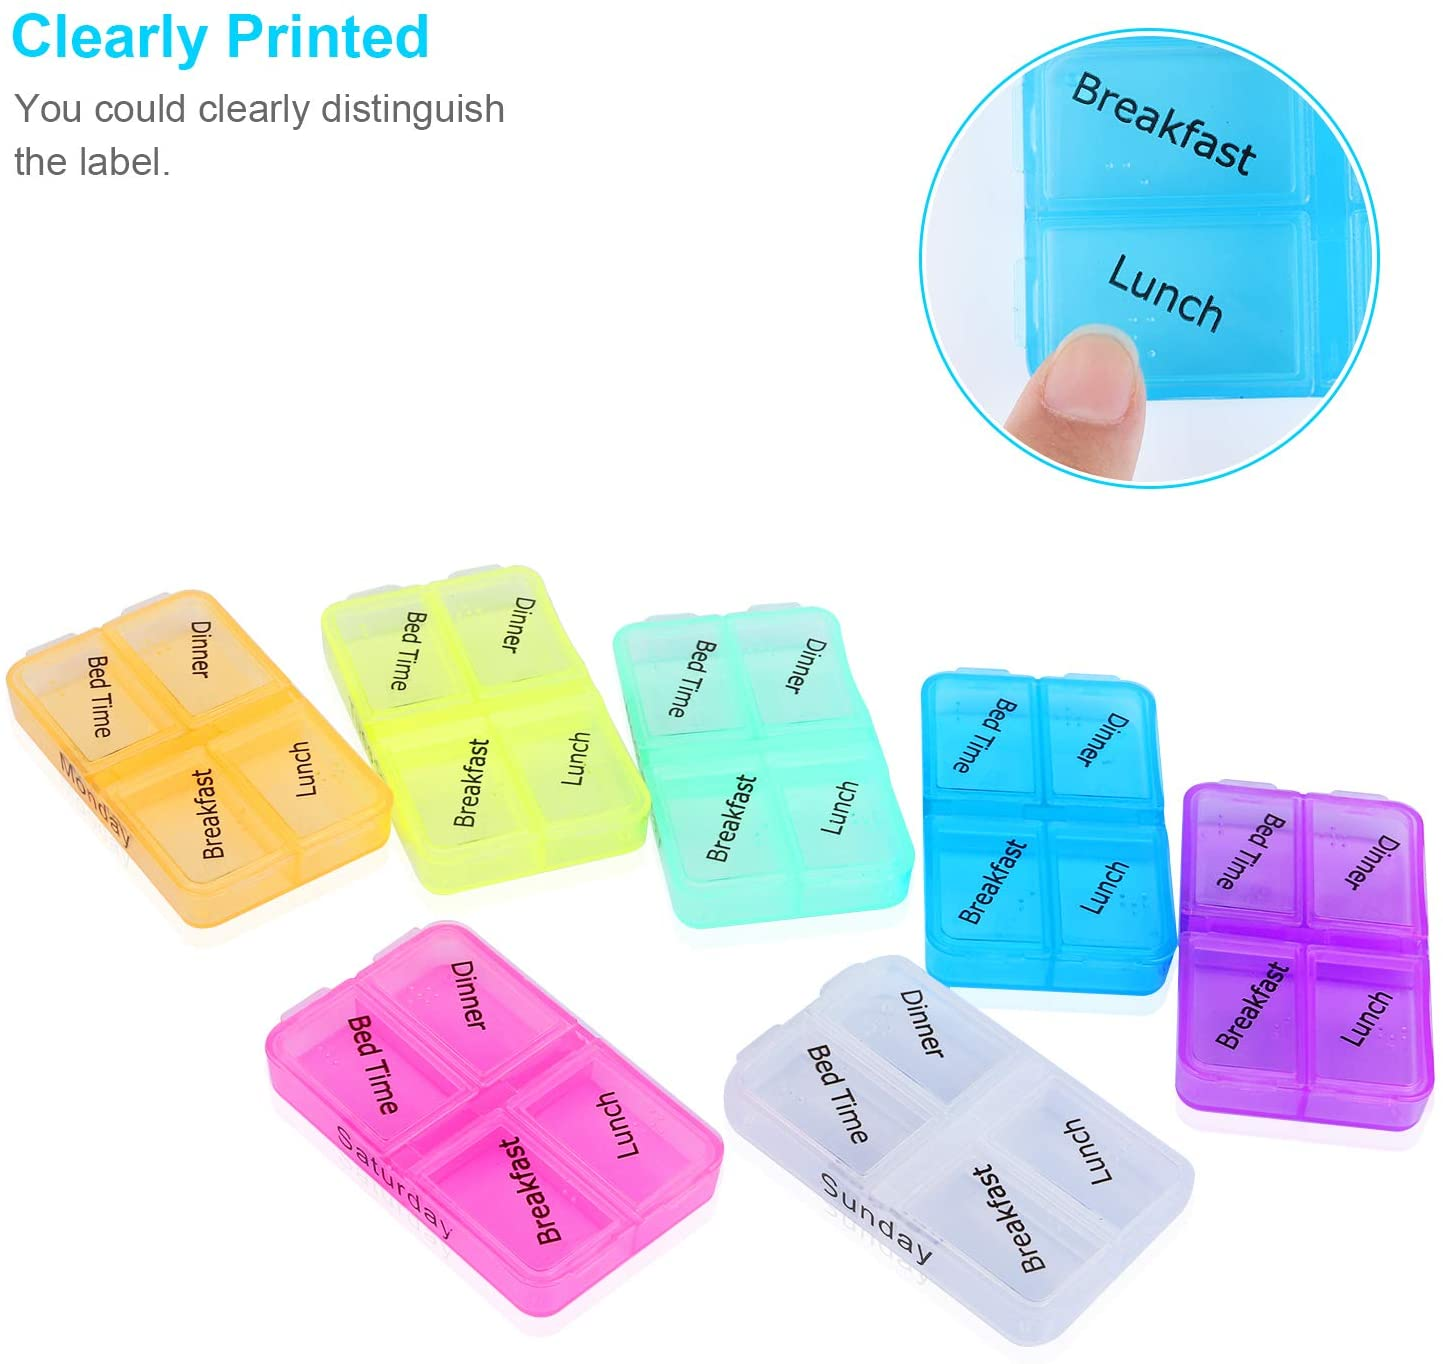 Weekly Pill Organizer,Daily Pill Organizer 7 Day 4 Compartment Pill Box Case